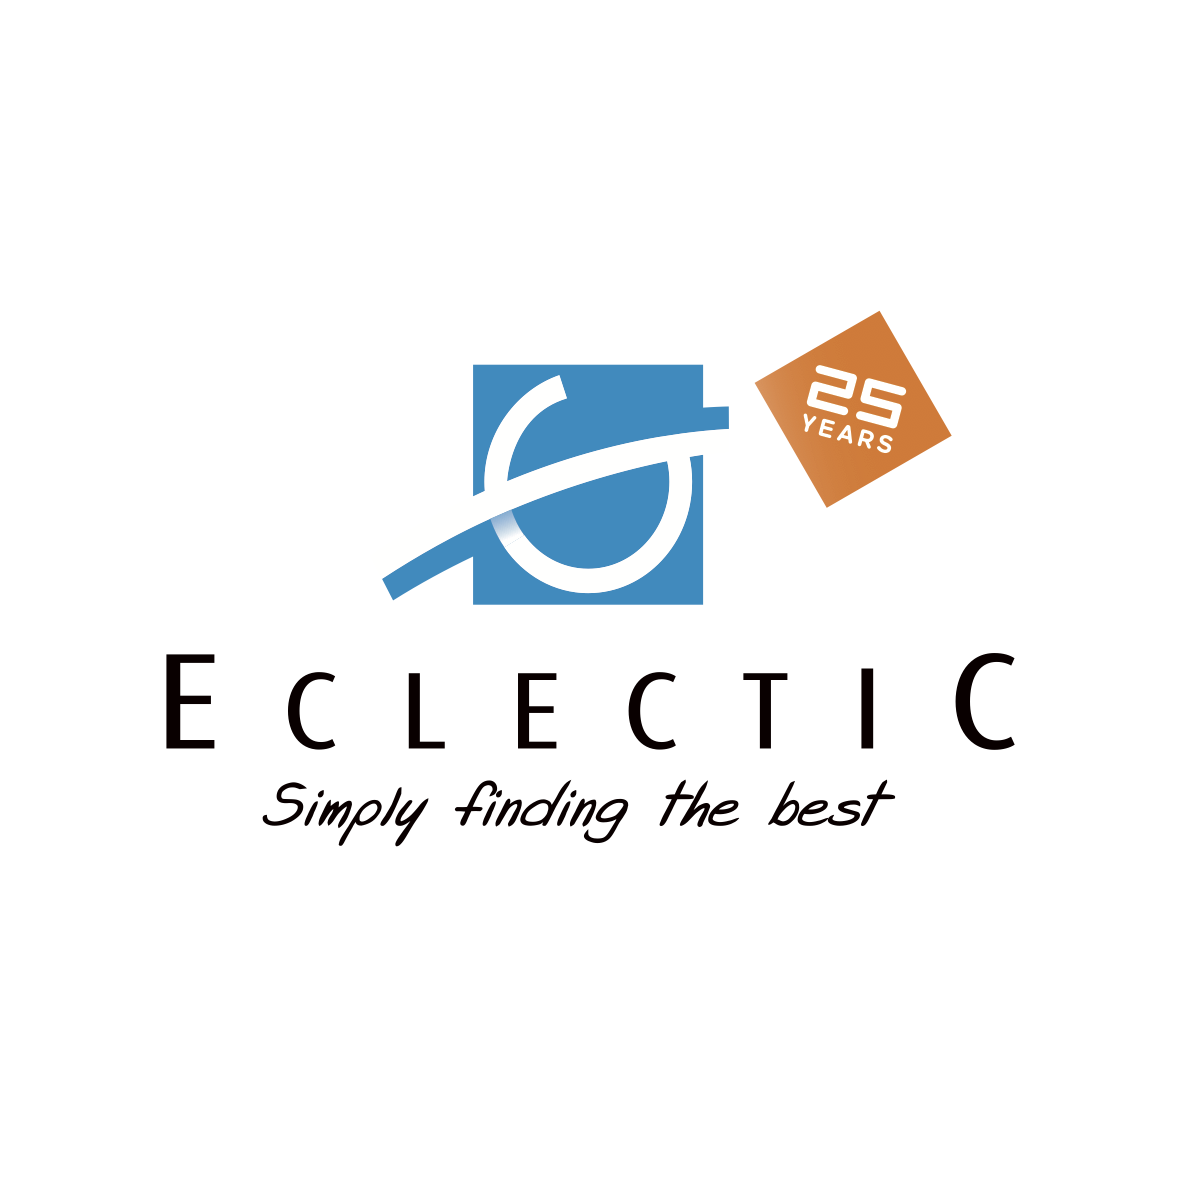 Eclectic_Logo+Tagline.png